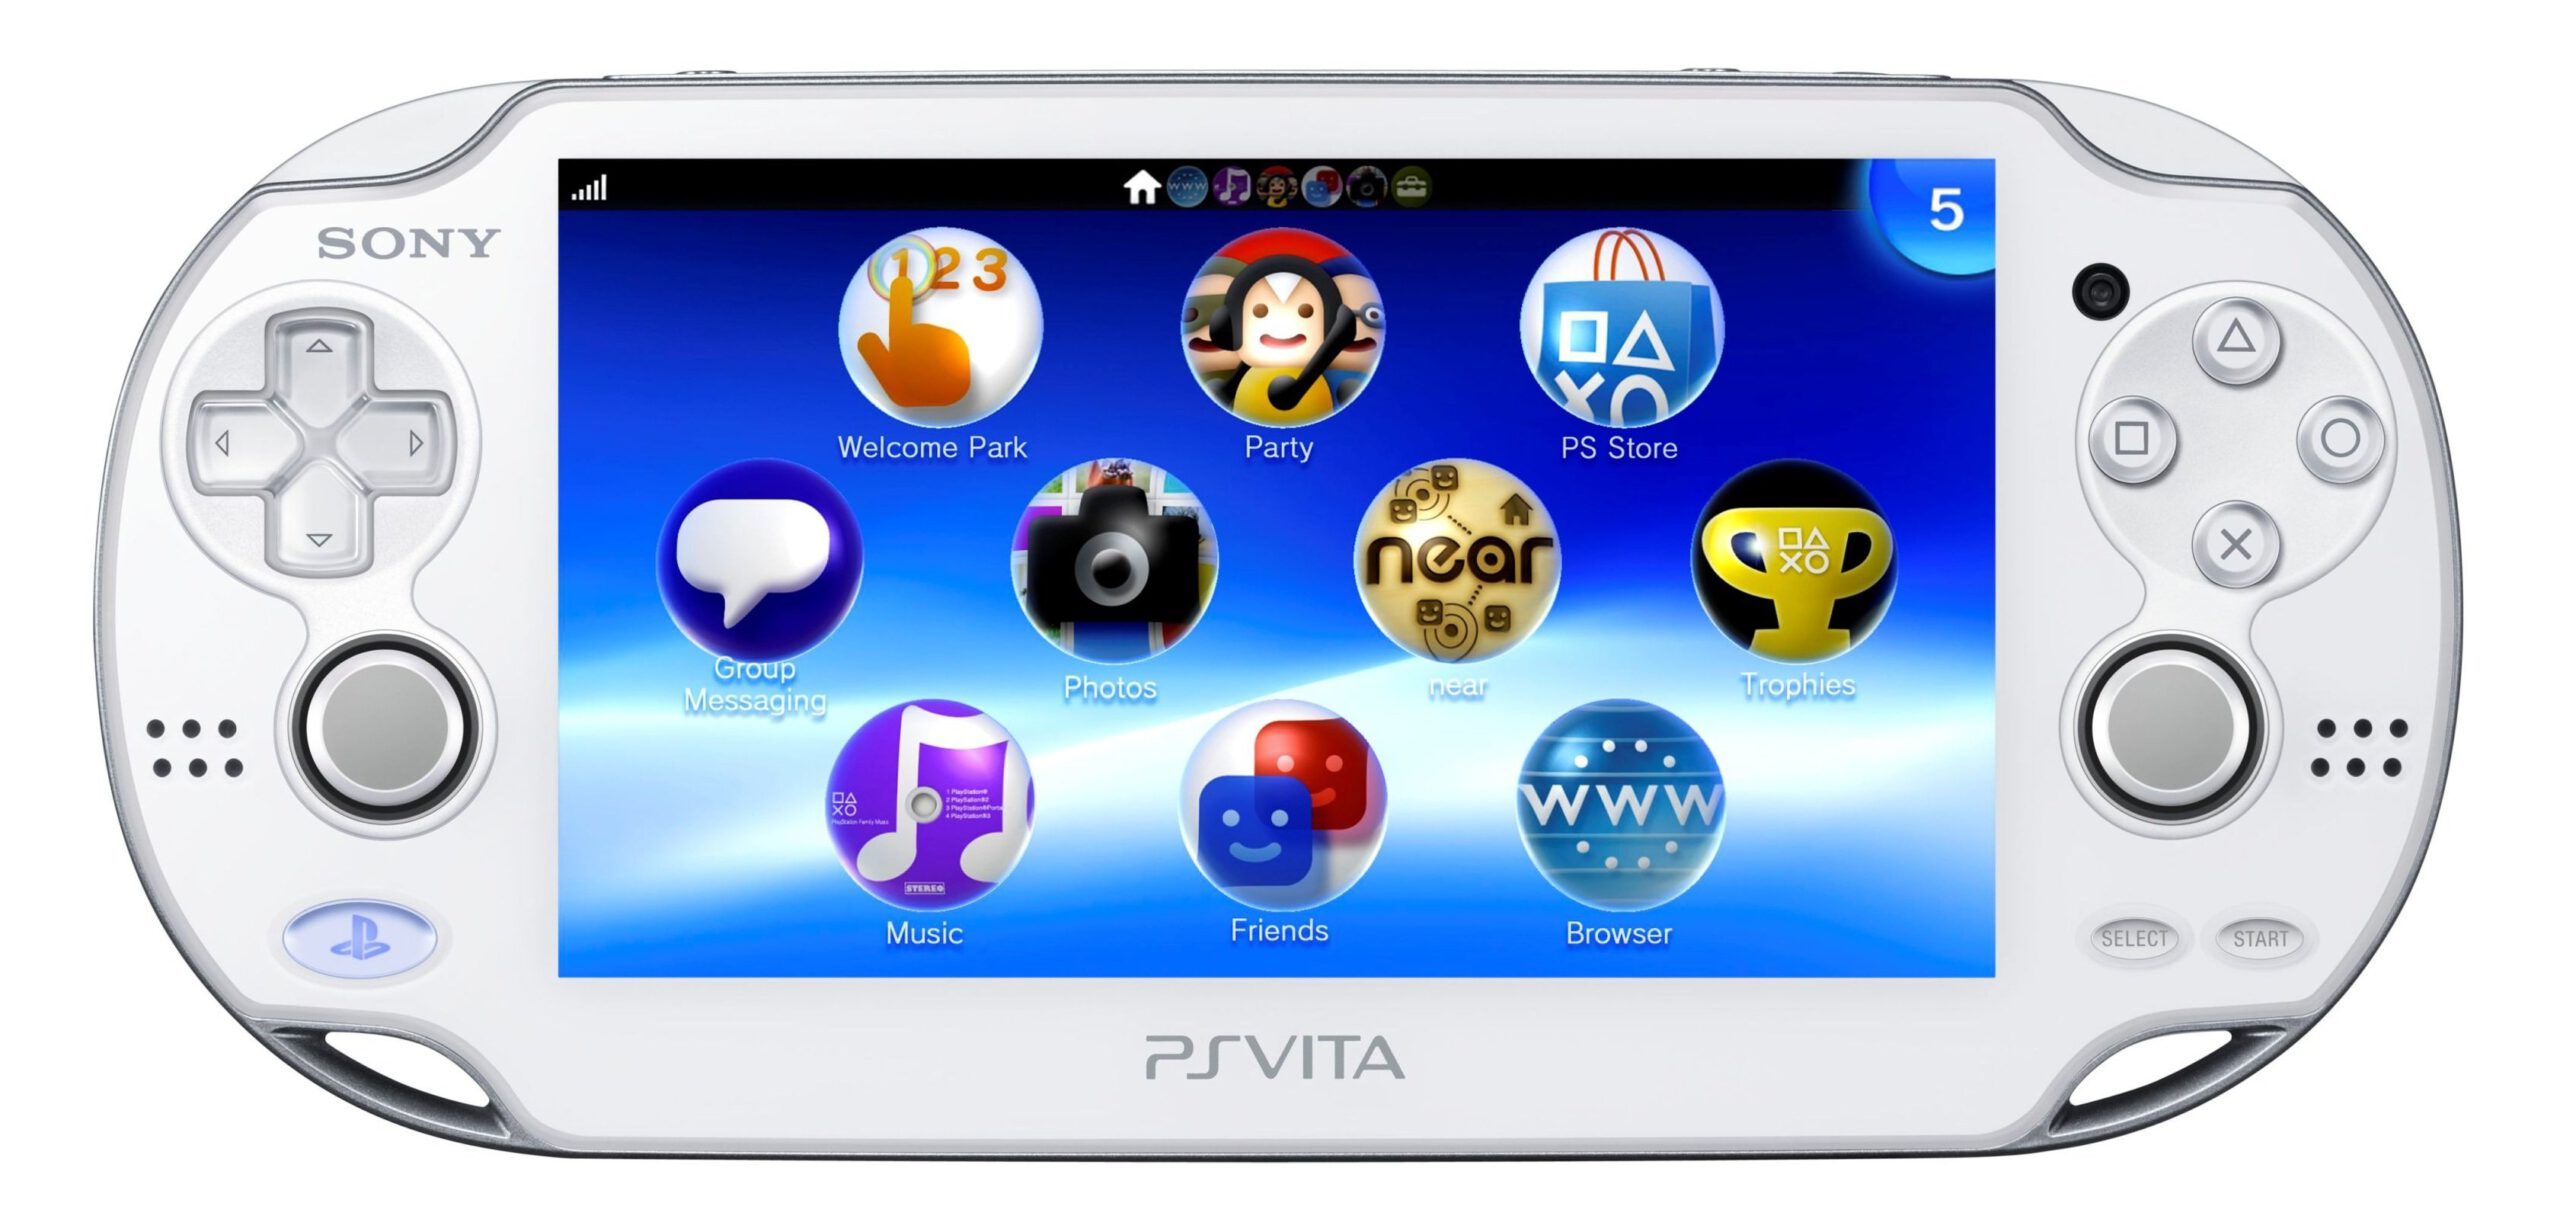 Pros and Cons of the PsVita